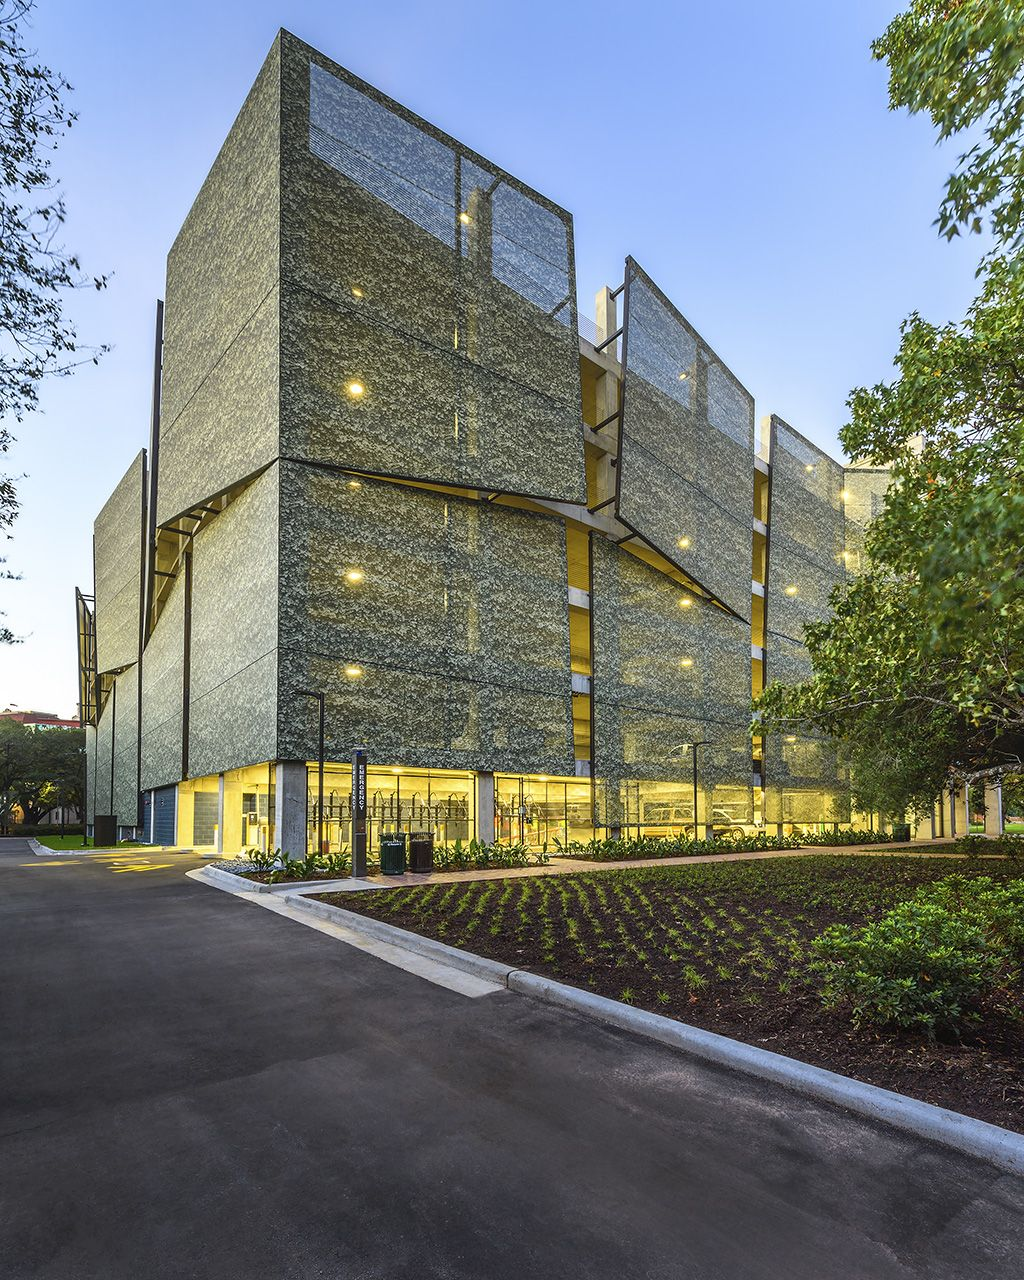 Garage Design Architecture: Rice University Parking Garage